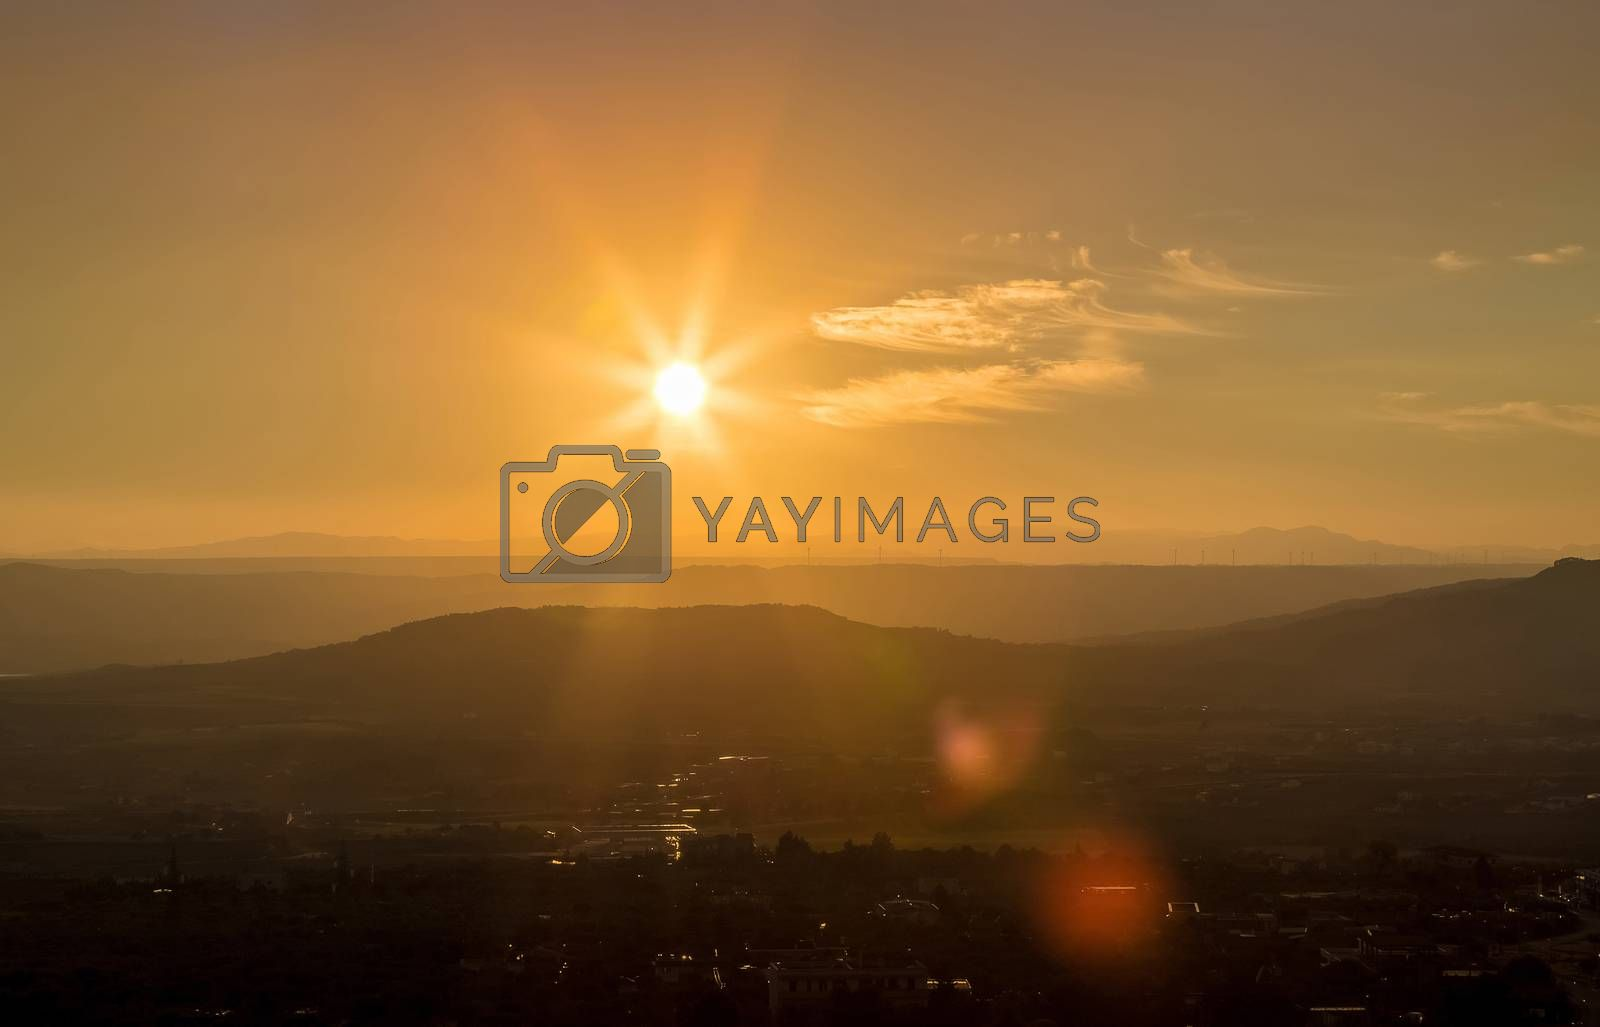 sunset scene with mountains in background, colorful sky with soft clouds and city in foreground, industrial view with sun light and lens flare